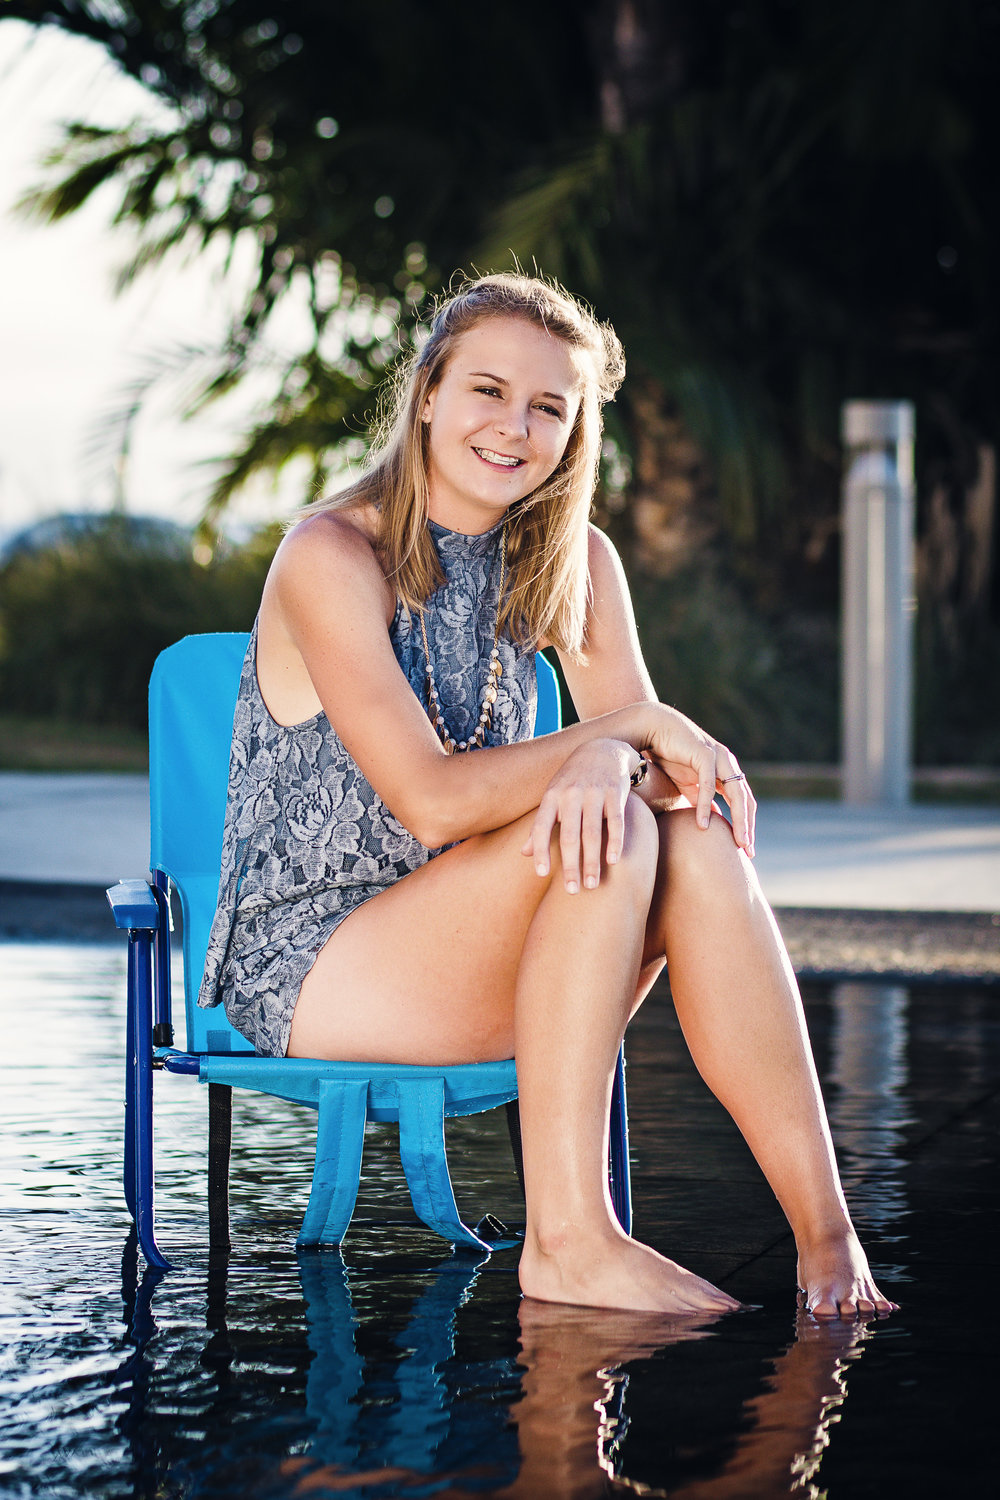 shawna-parks-photo-Libby-teen-portraits-009.jpg